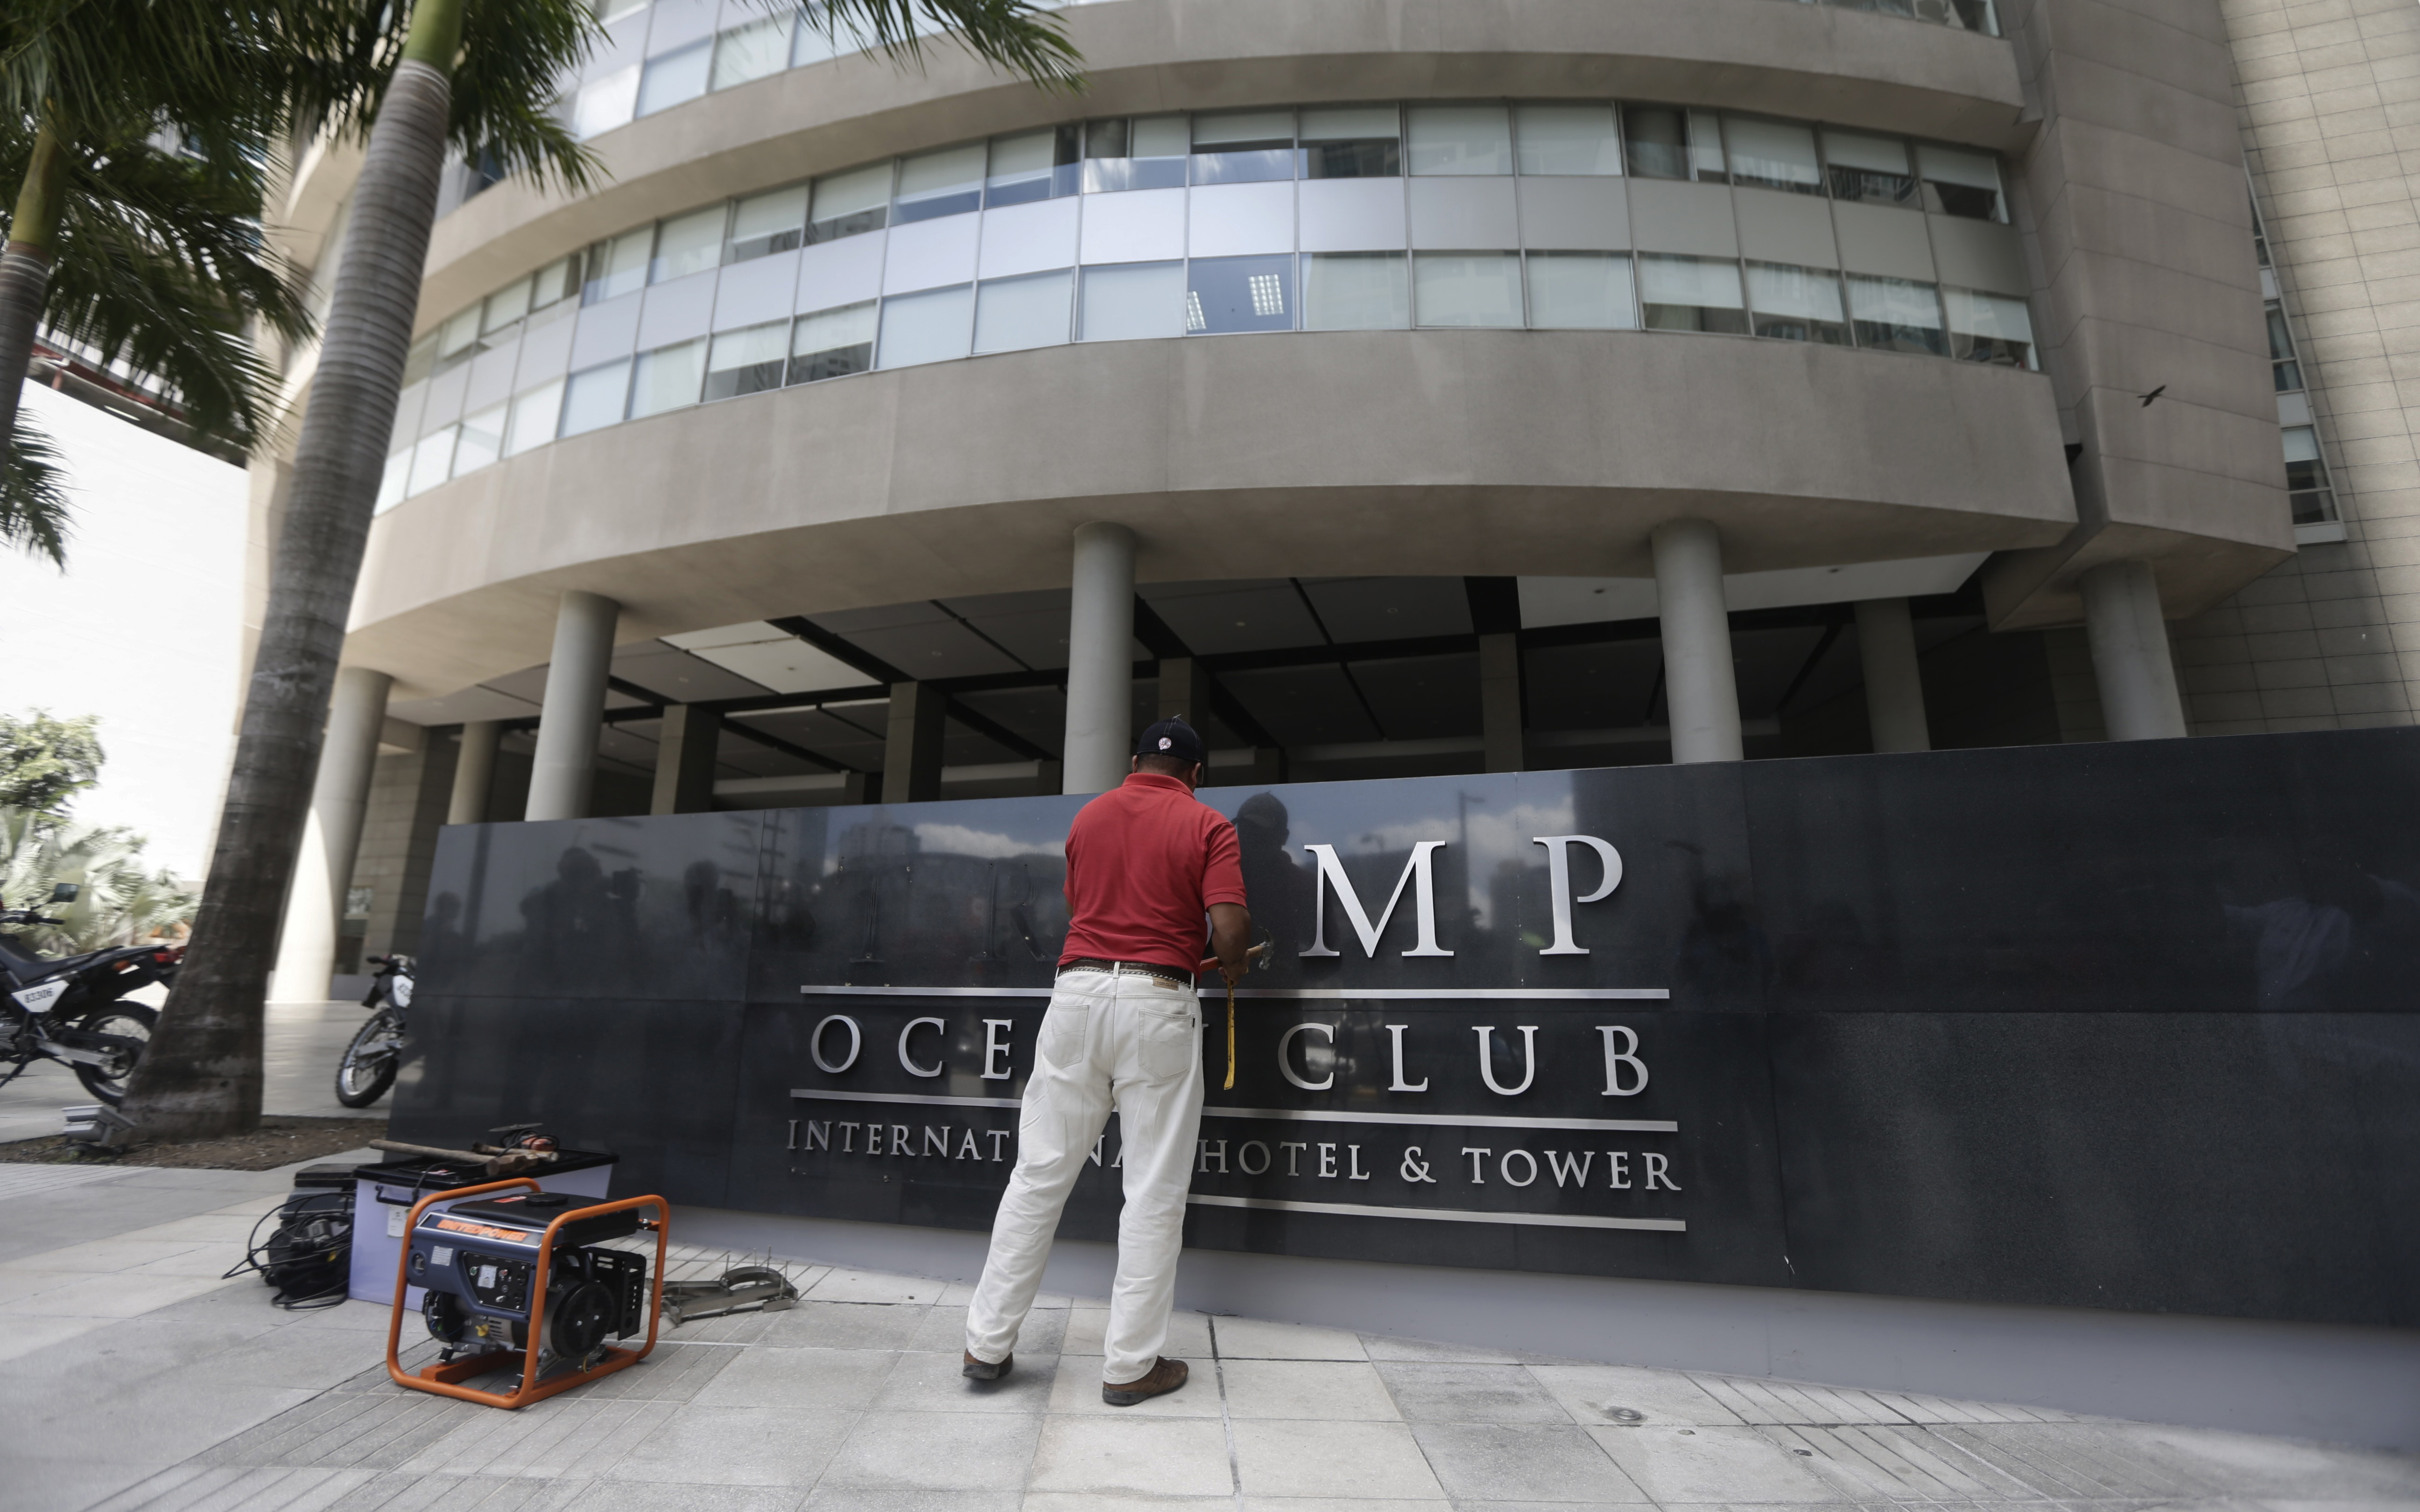 A Hotel in Panama Is the Latest to Remove Donald Trump's Name After His Election. Here Are the Others